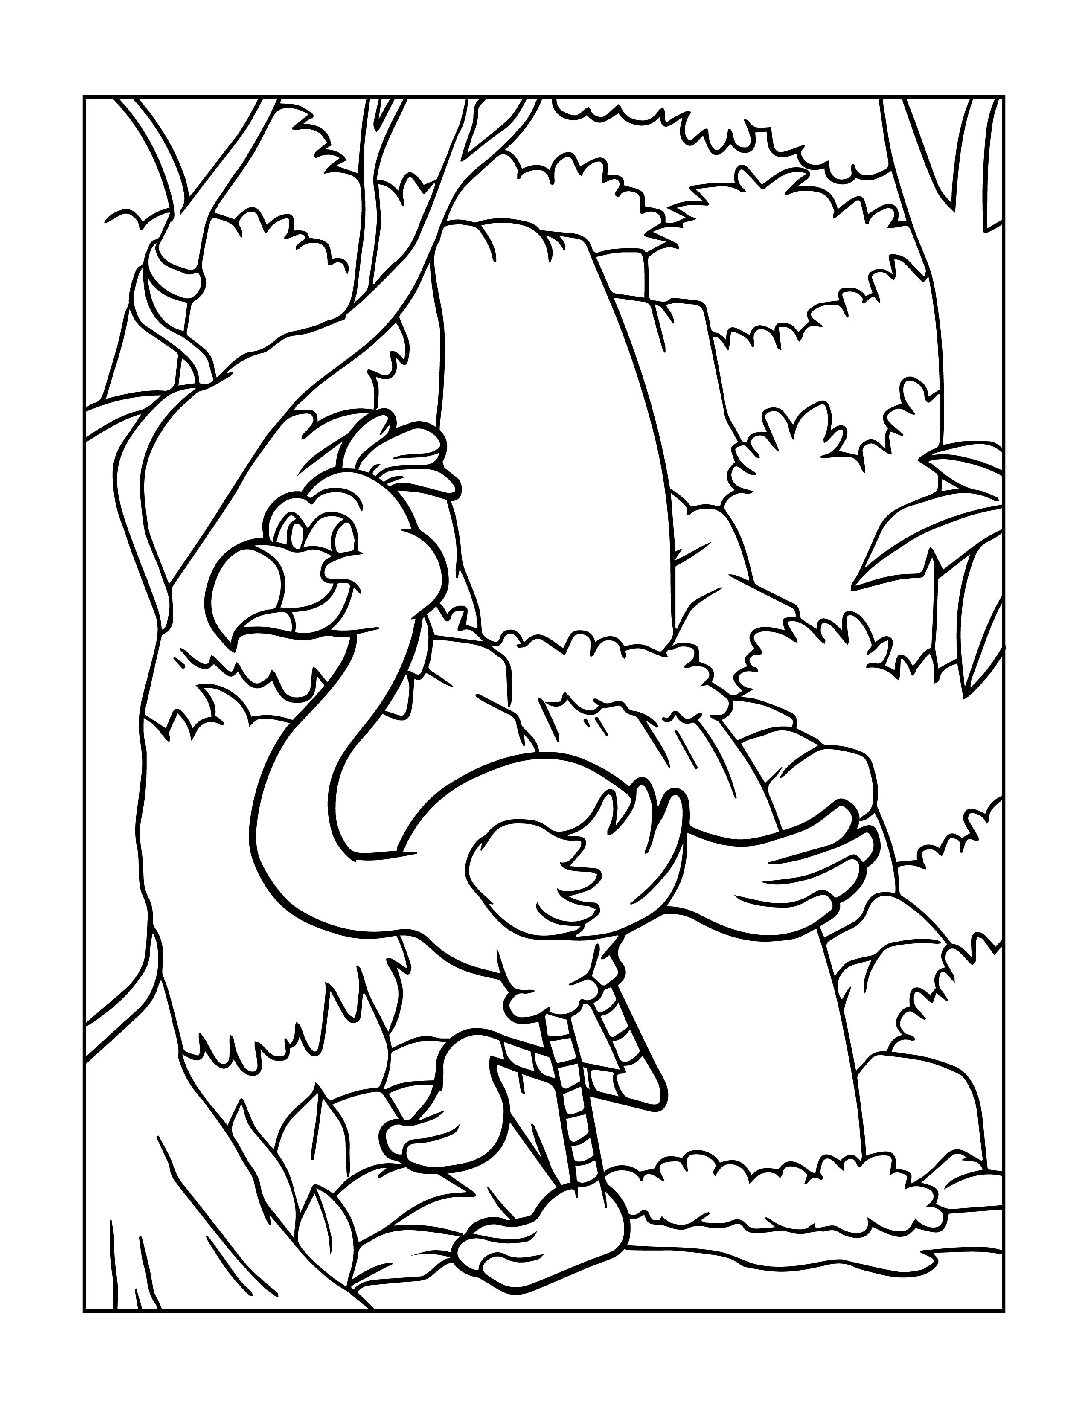 Coloring-Pages-Zoo-Animals-3-01-1-pdf Free Printable  Zoo Animals Colouring Pages